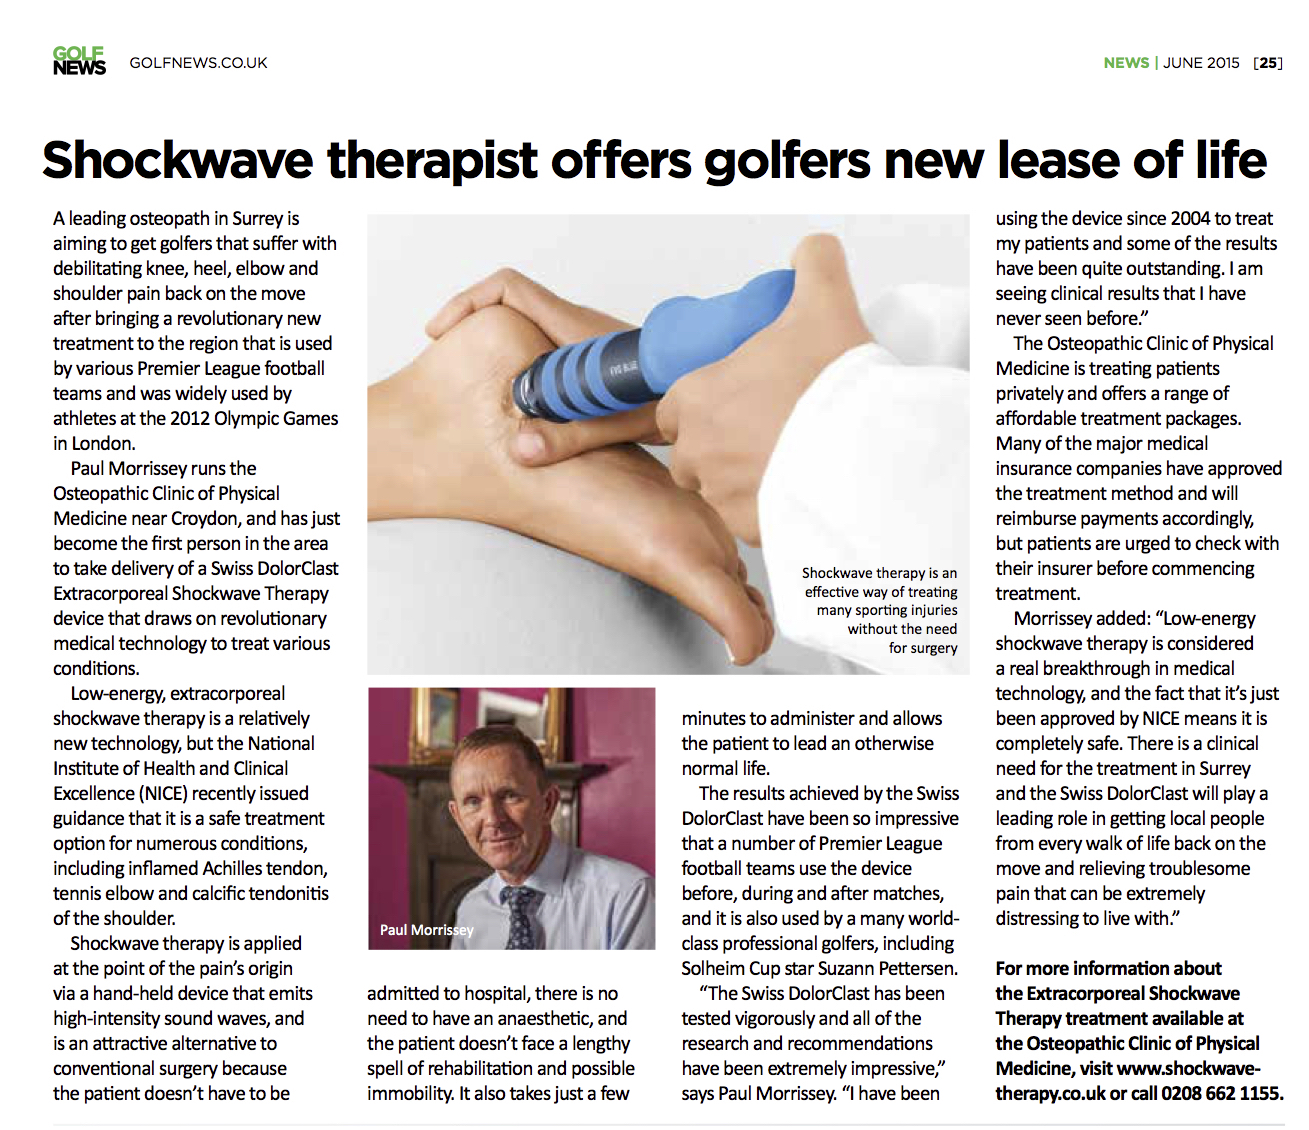 OC in the News - Shockwave therapy with Golf News